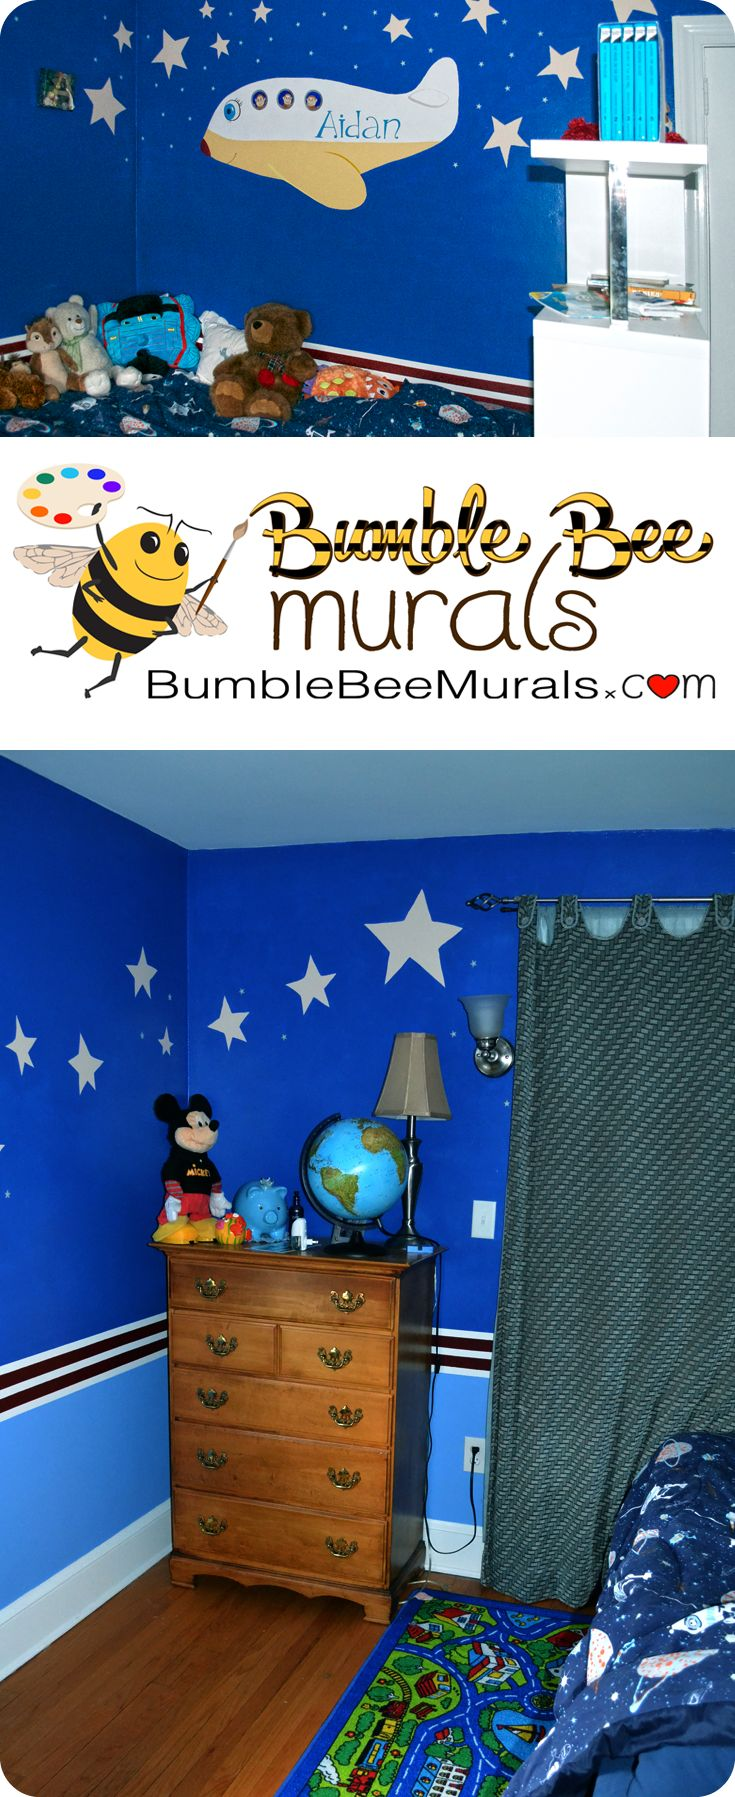 32 best nursery wall murals images on pinterest nursery wall stars stripes and airplanes custom wall mural hand painted for a child s bedroom